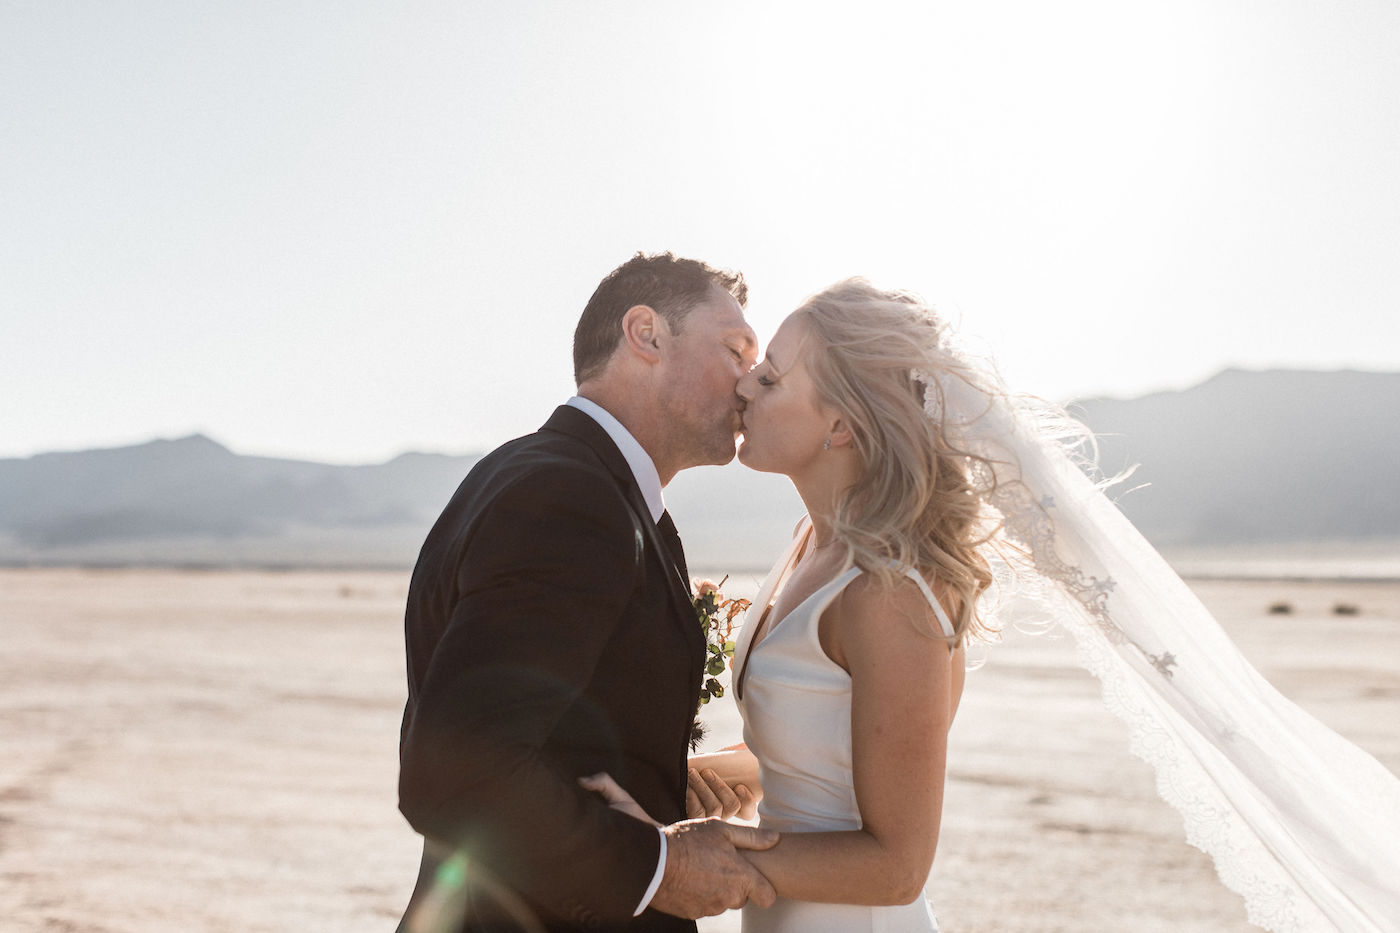 intimate flora pop las vegas elopement at dry lake bed00009.jpg